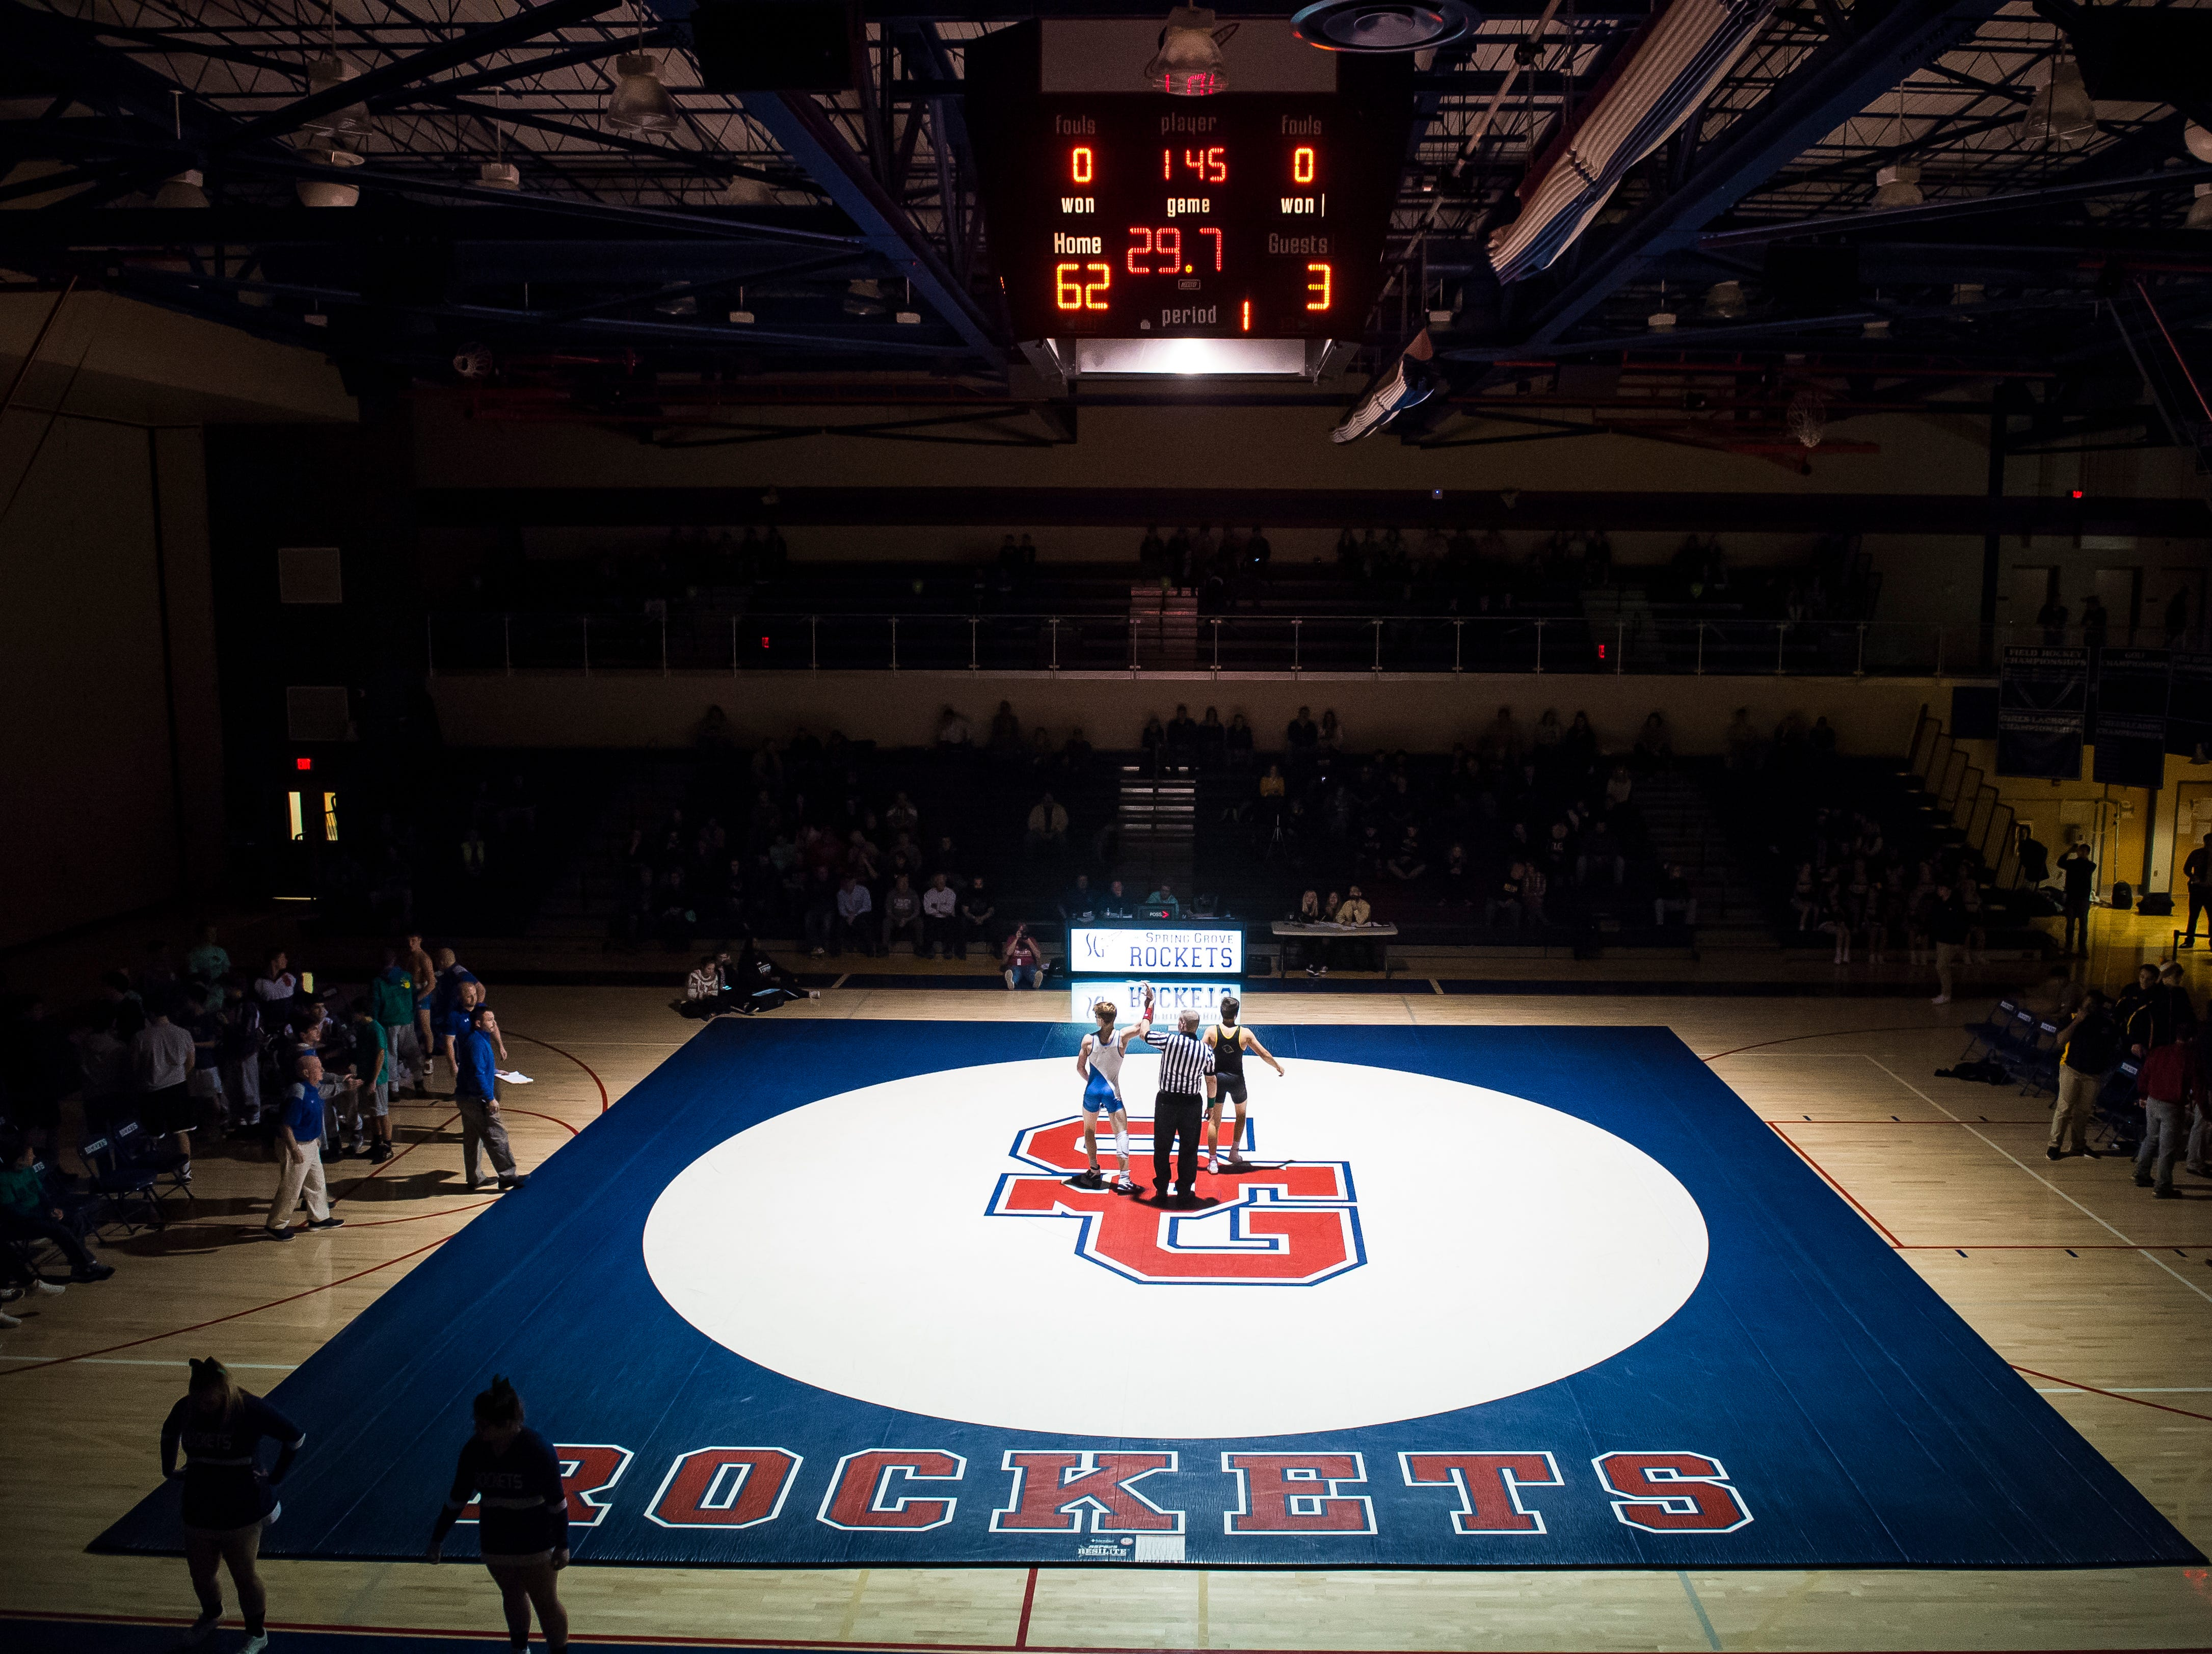 Spring Grove's Thomas Dressler gets his hands raised after defeating Red Lion's Kyle Daugherty in the 145-pound bout at Spring Grove High School on Wednesday, December 12, 2018. The Rockets won the dual 68-9.